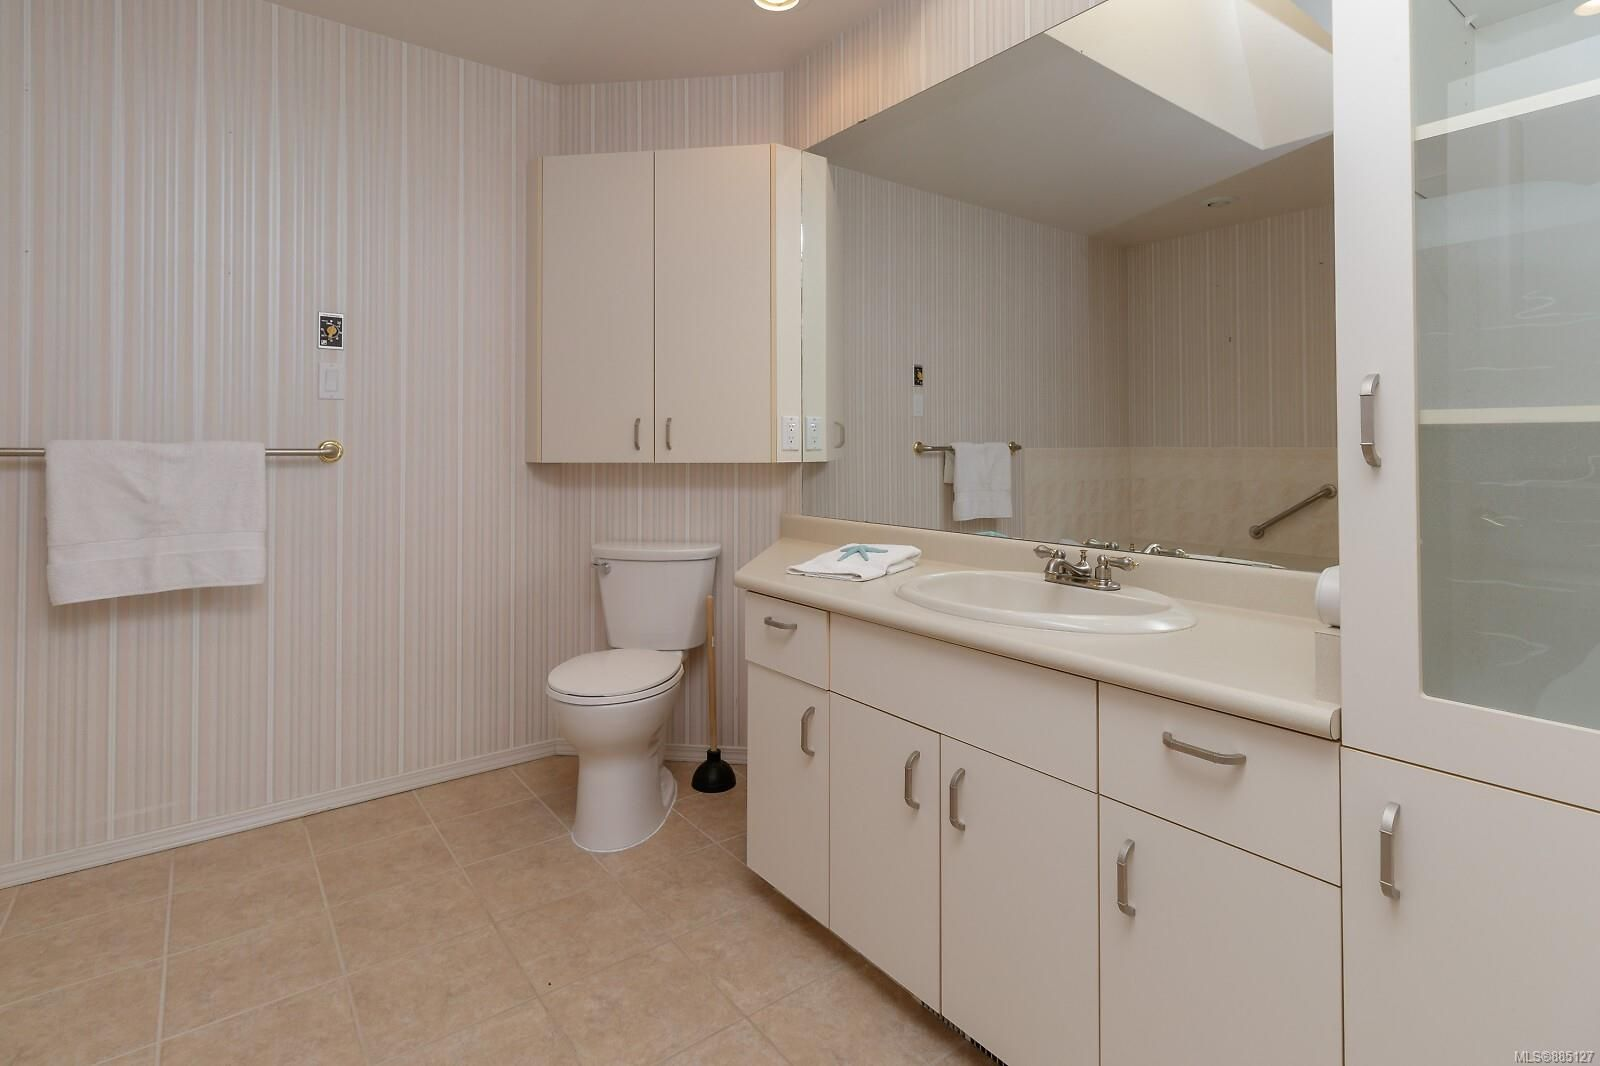 Photo 34: Photos: 26 529 Johnstone Rd in : PQ French Creek Row/Townhouse for sale (Parksville/Qualicum)  : MLS®# 885127